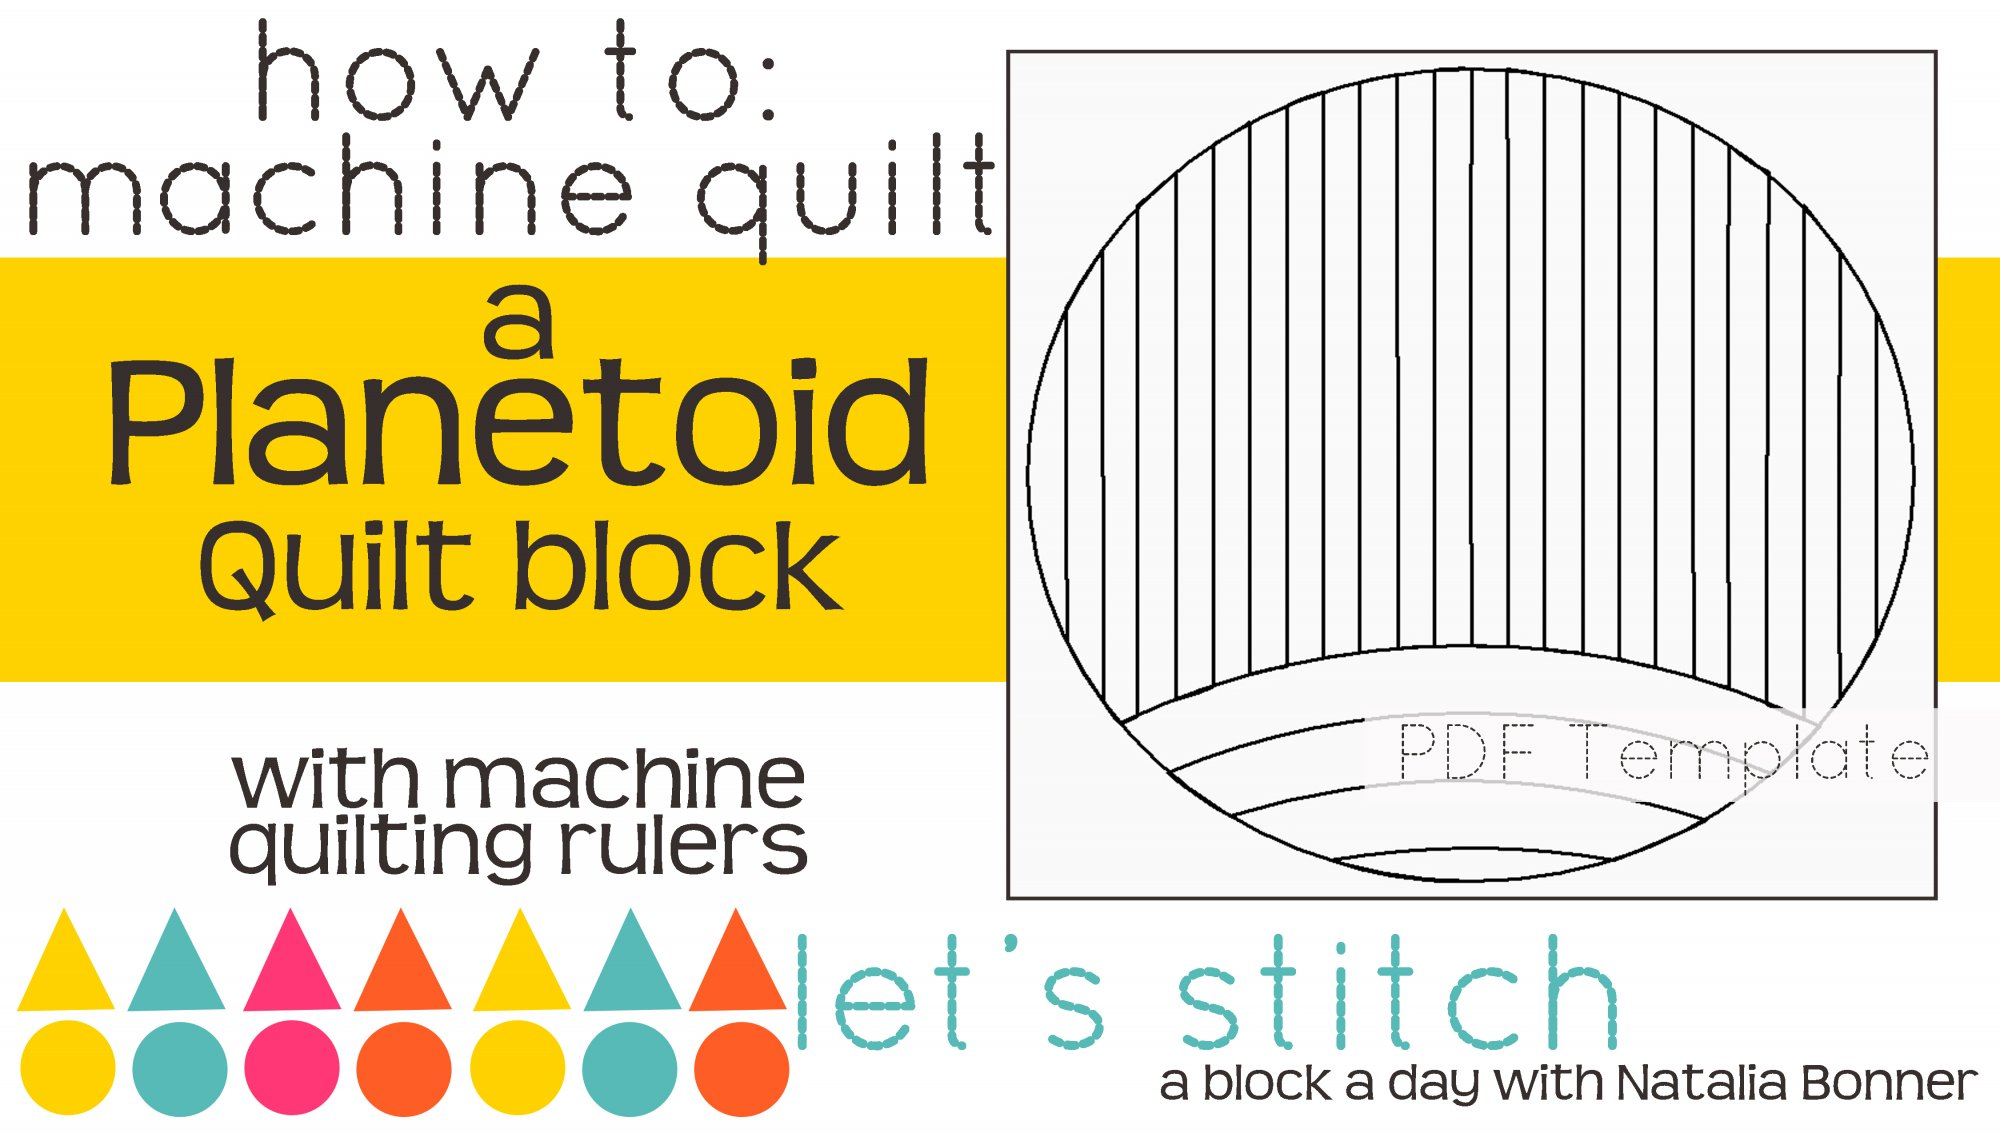 Let's Stitch - A Block a Day With Natalia Bonner - PDF - Planetoid